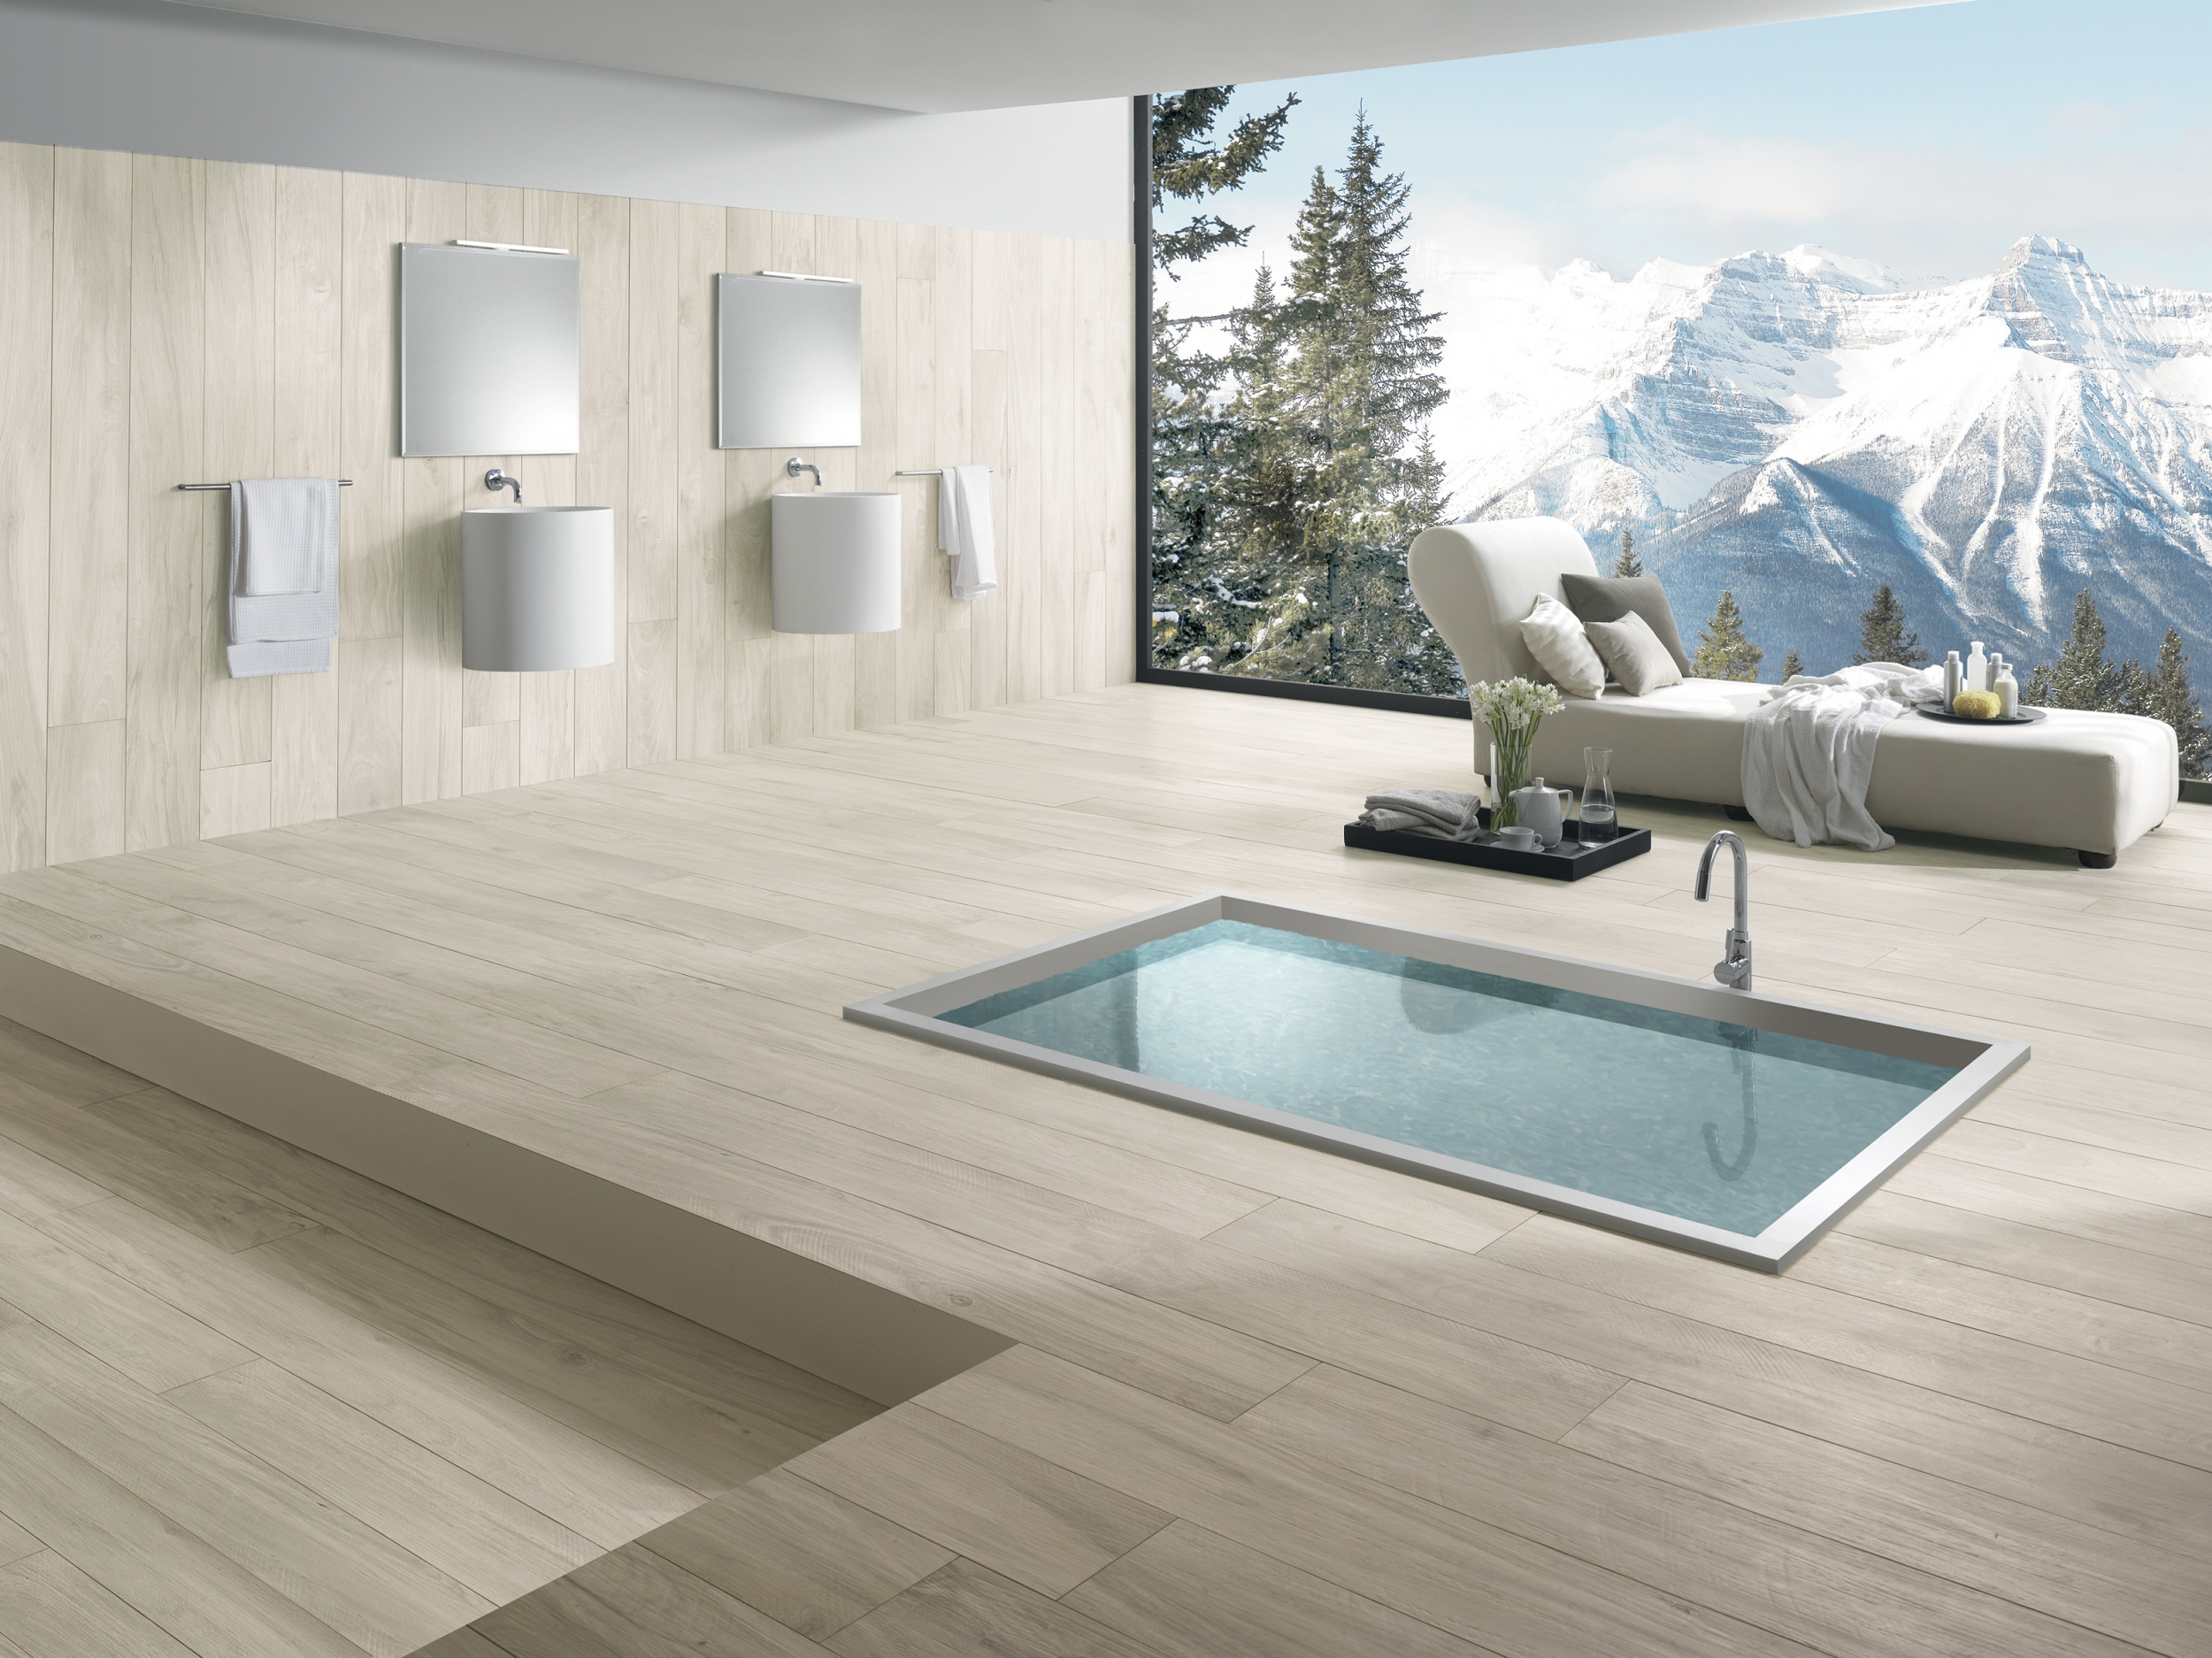 introducing essenza a new wood effect porcelain tile from italy